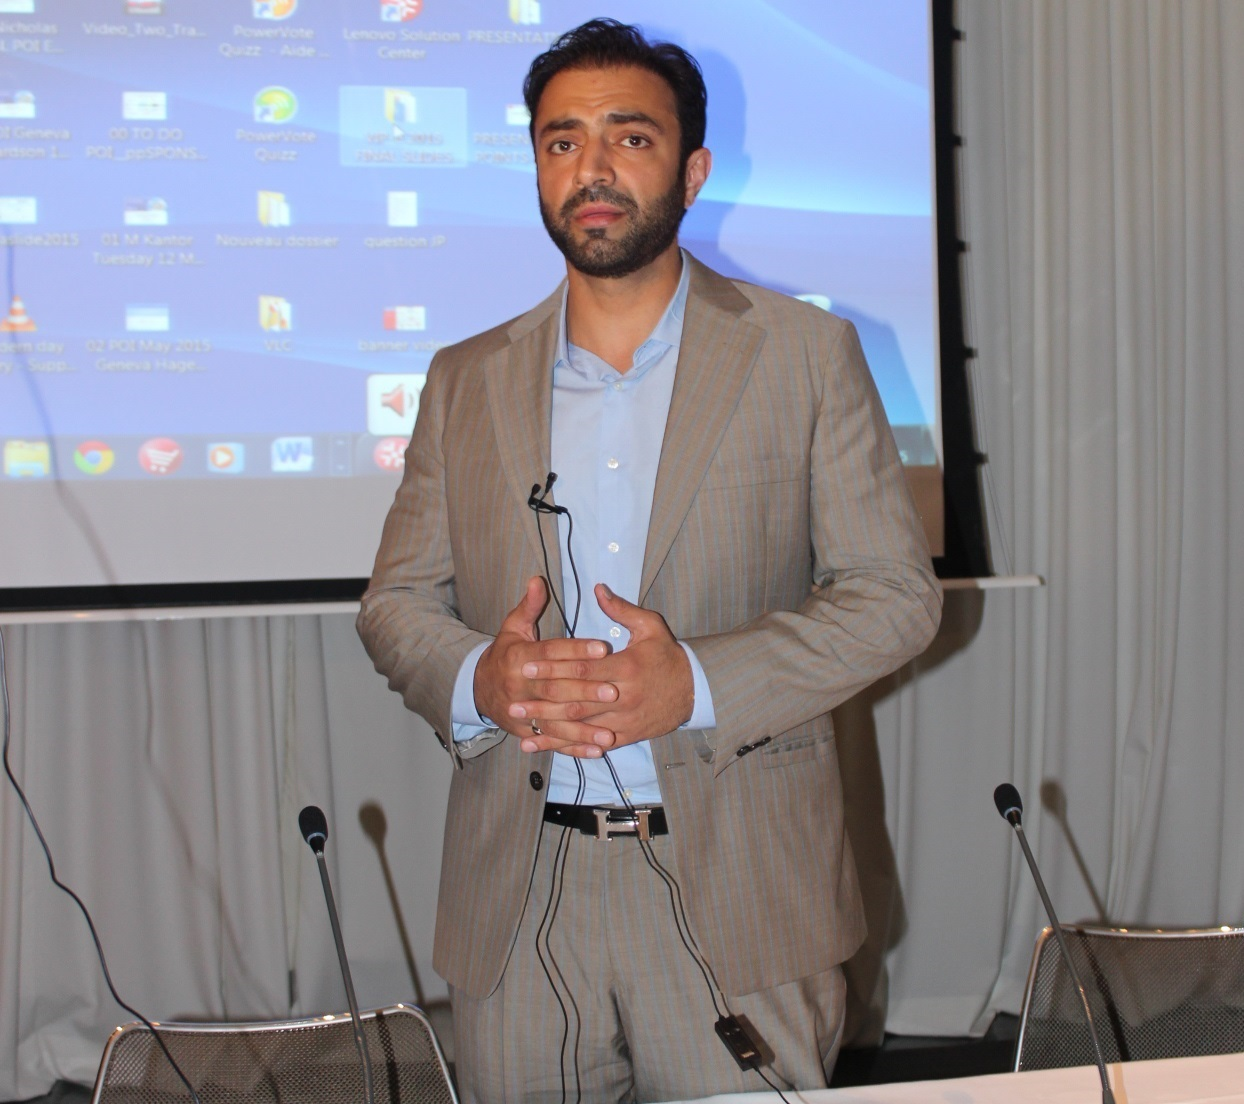 Baloch separatist leader Bugti seeks asylum in India